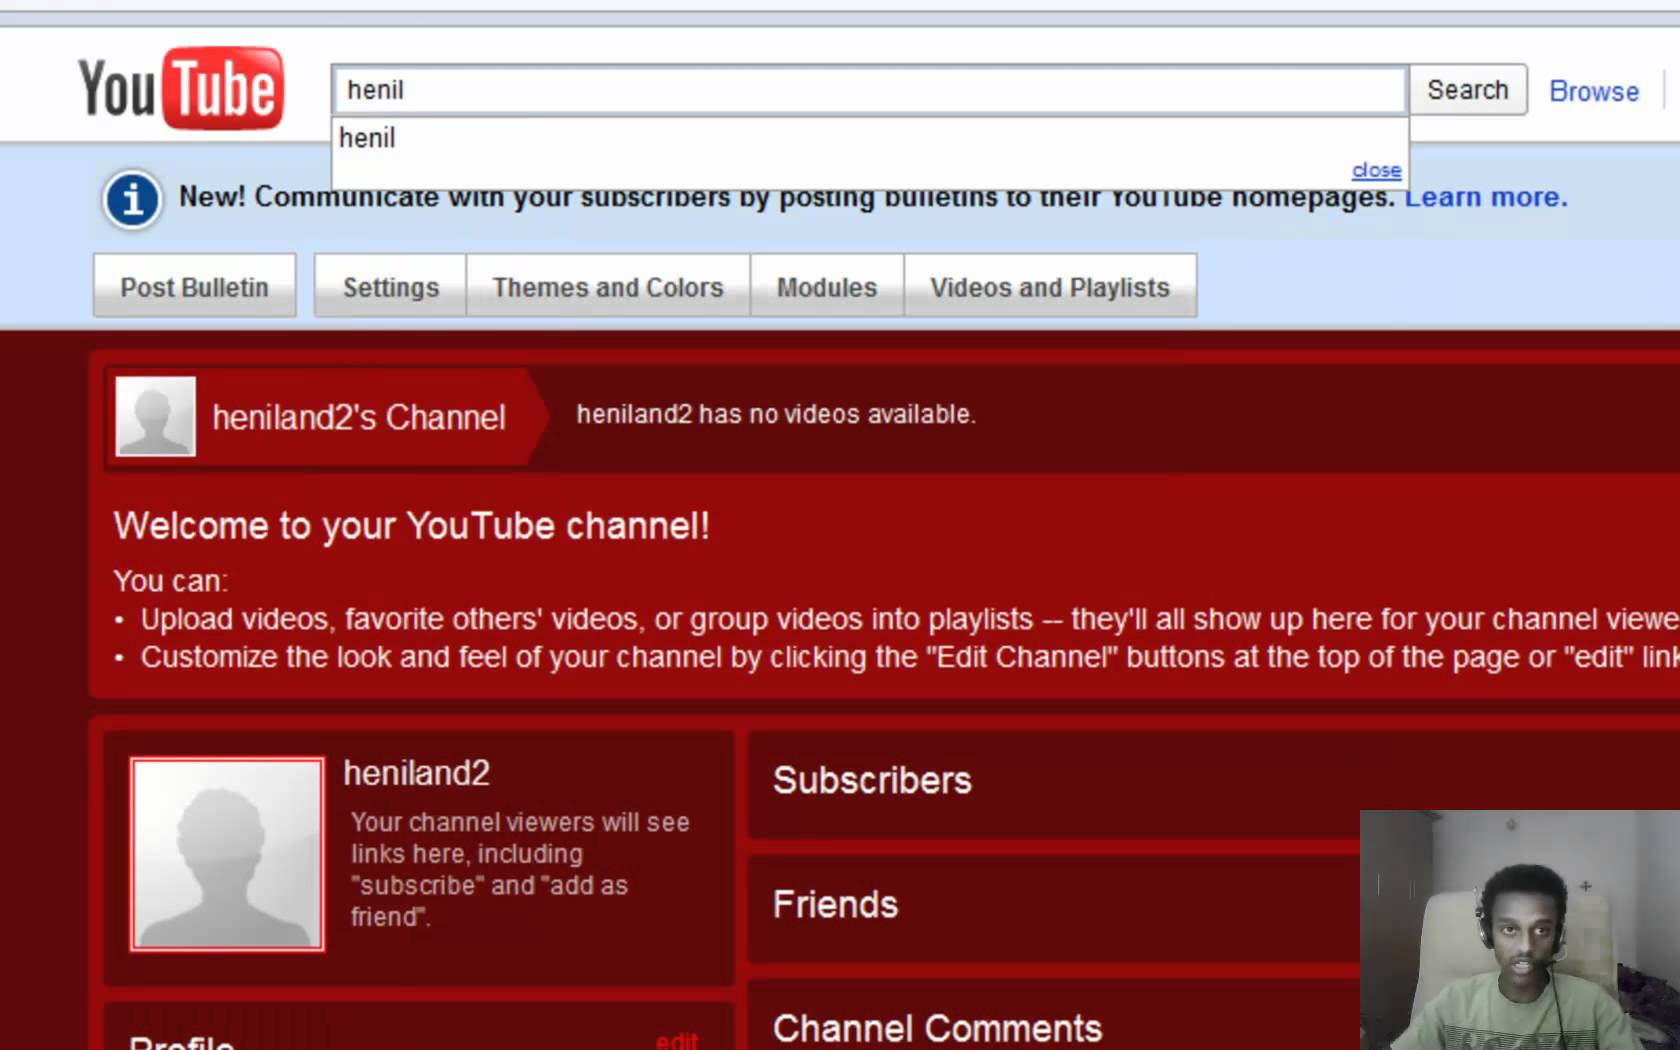 How to get a youtube chanal acount (Amharic)